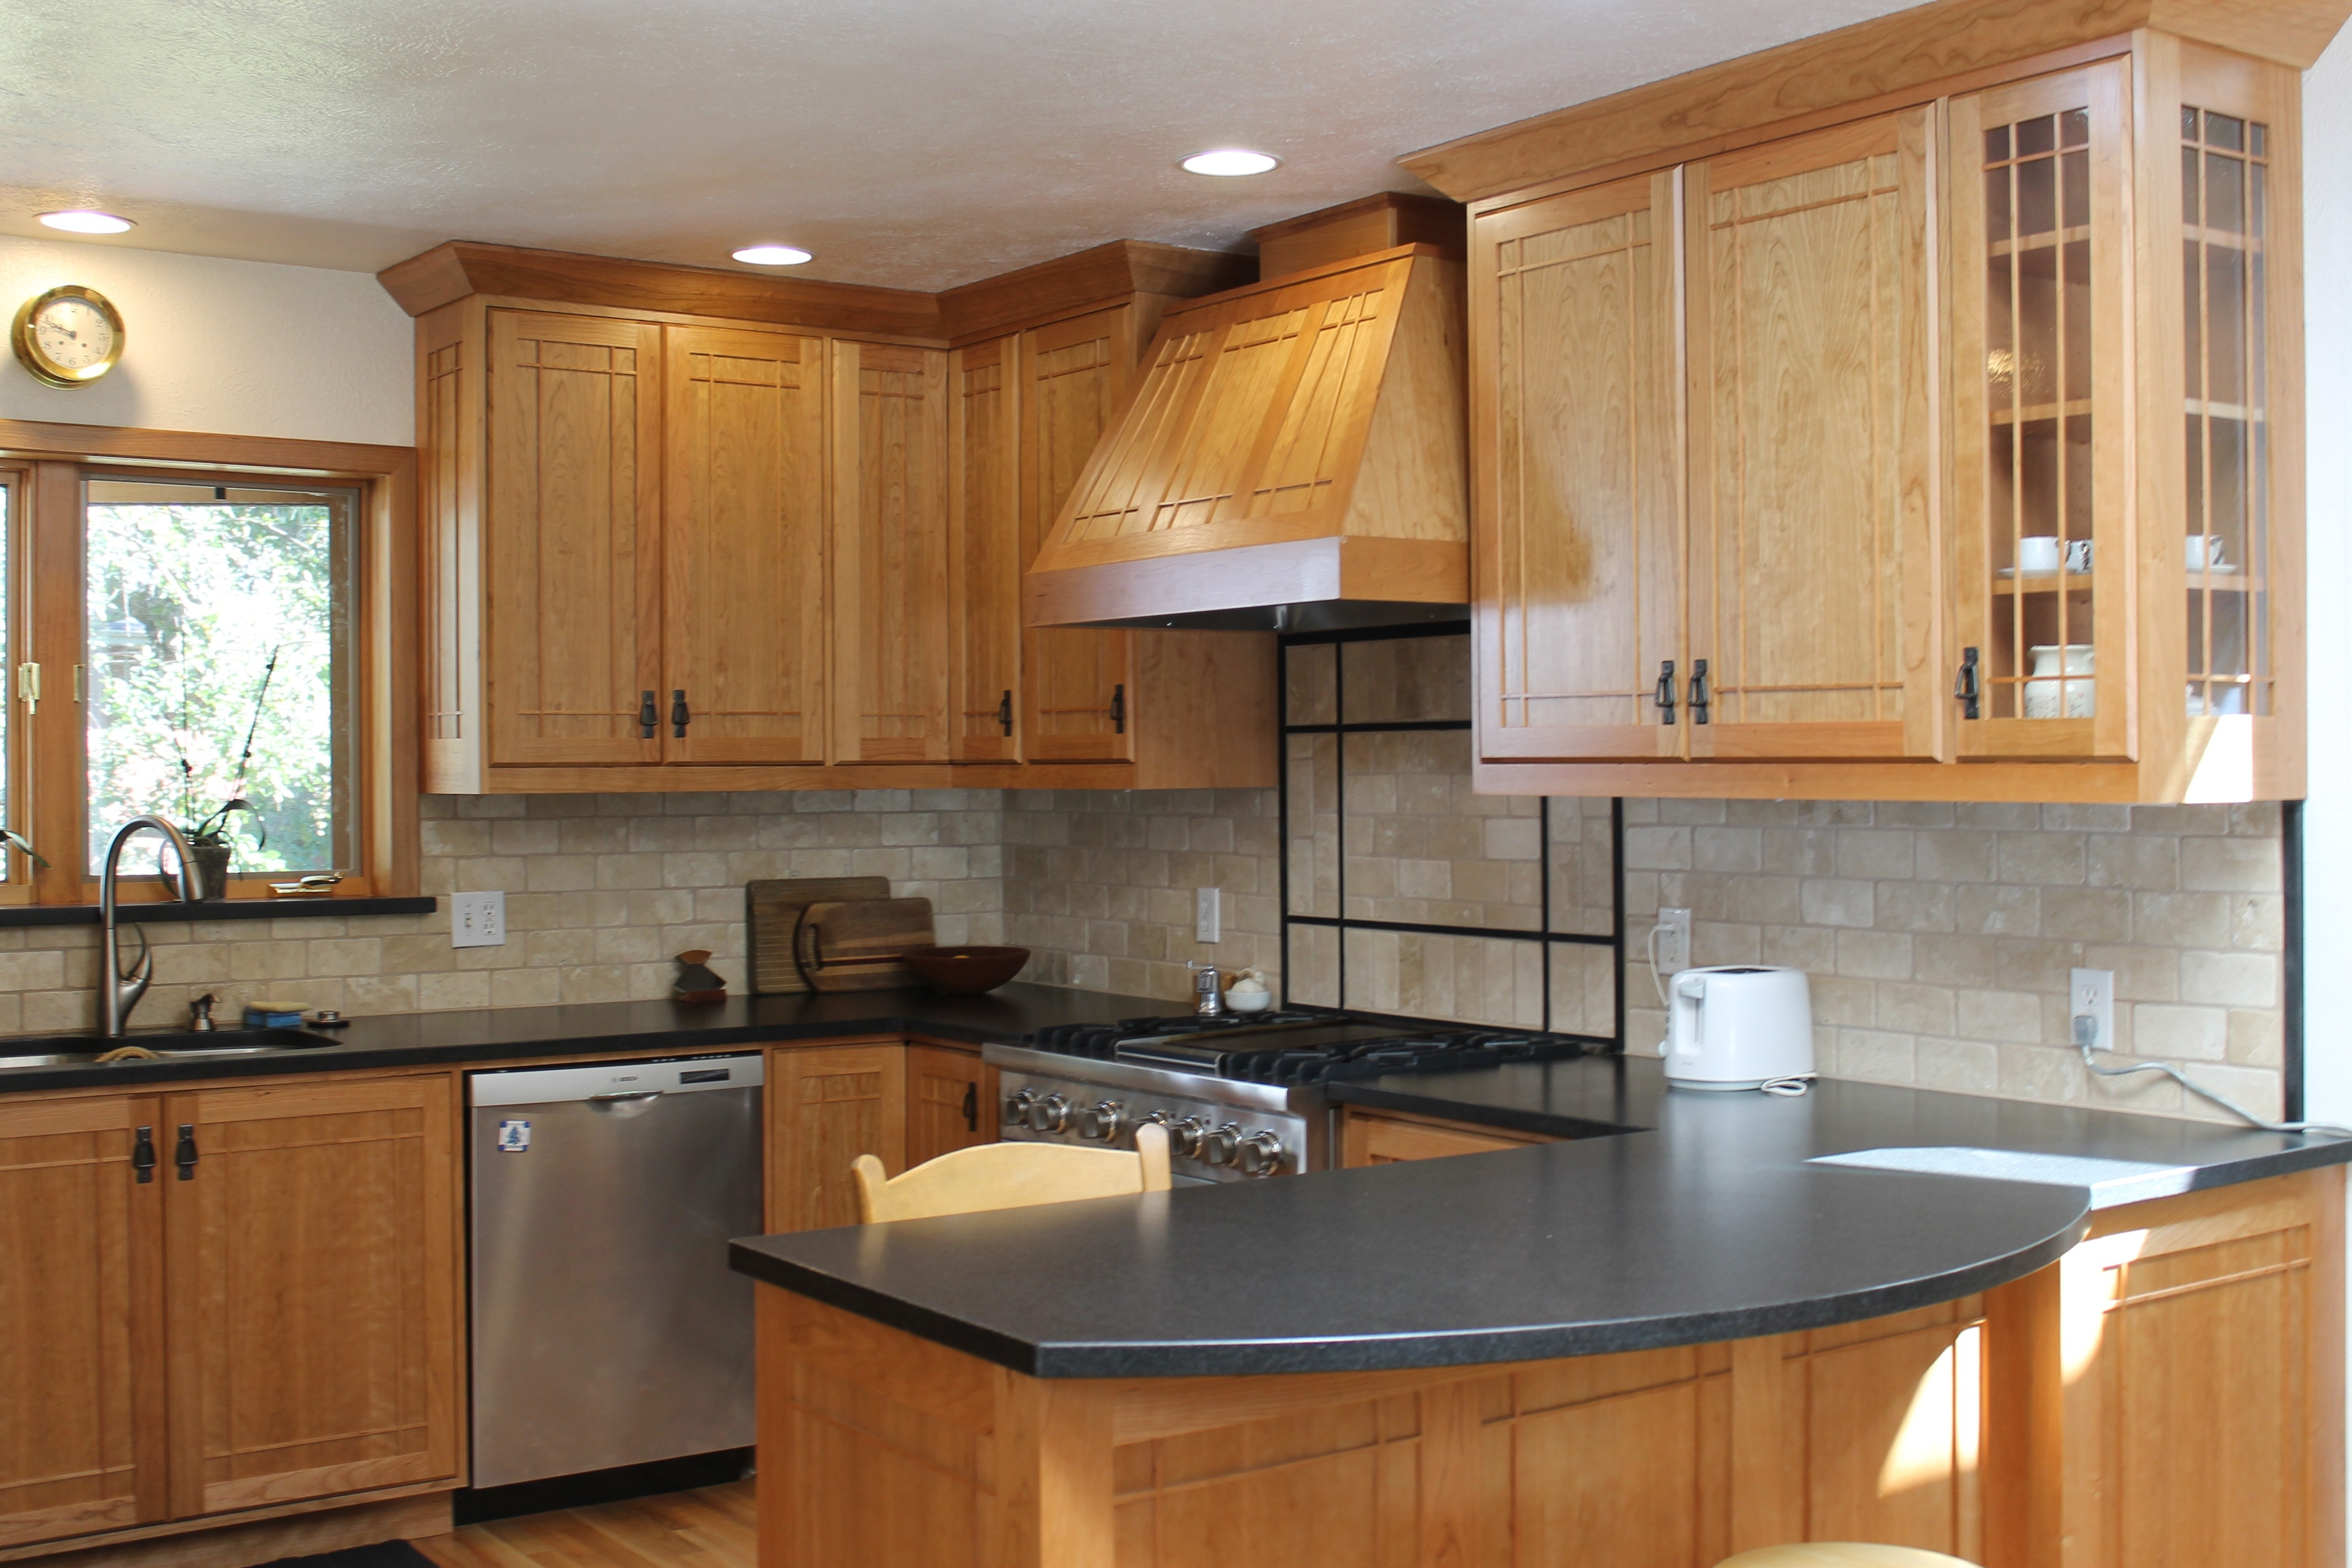 Permalink to Transitional Kitchen With Oak Cabinets